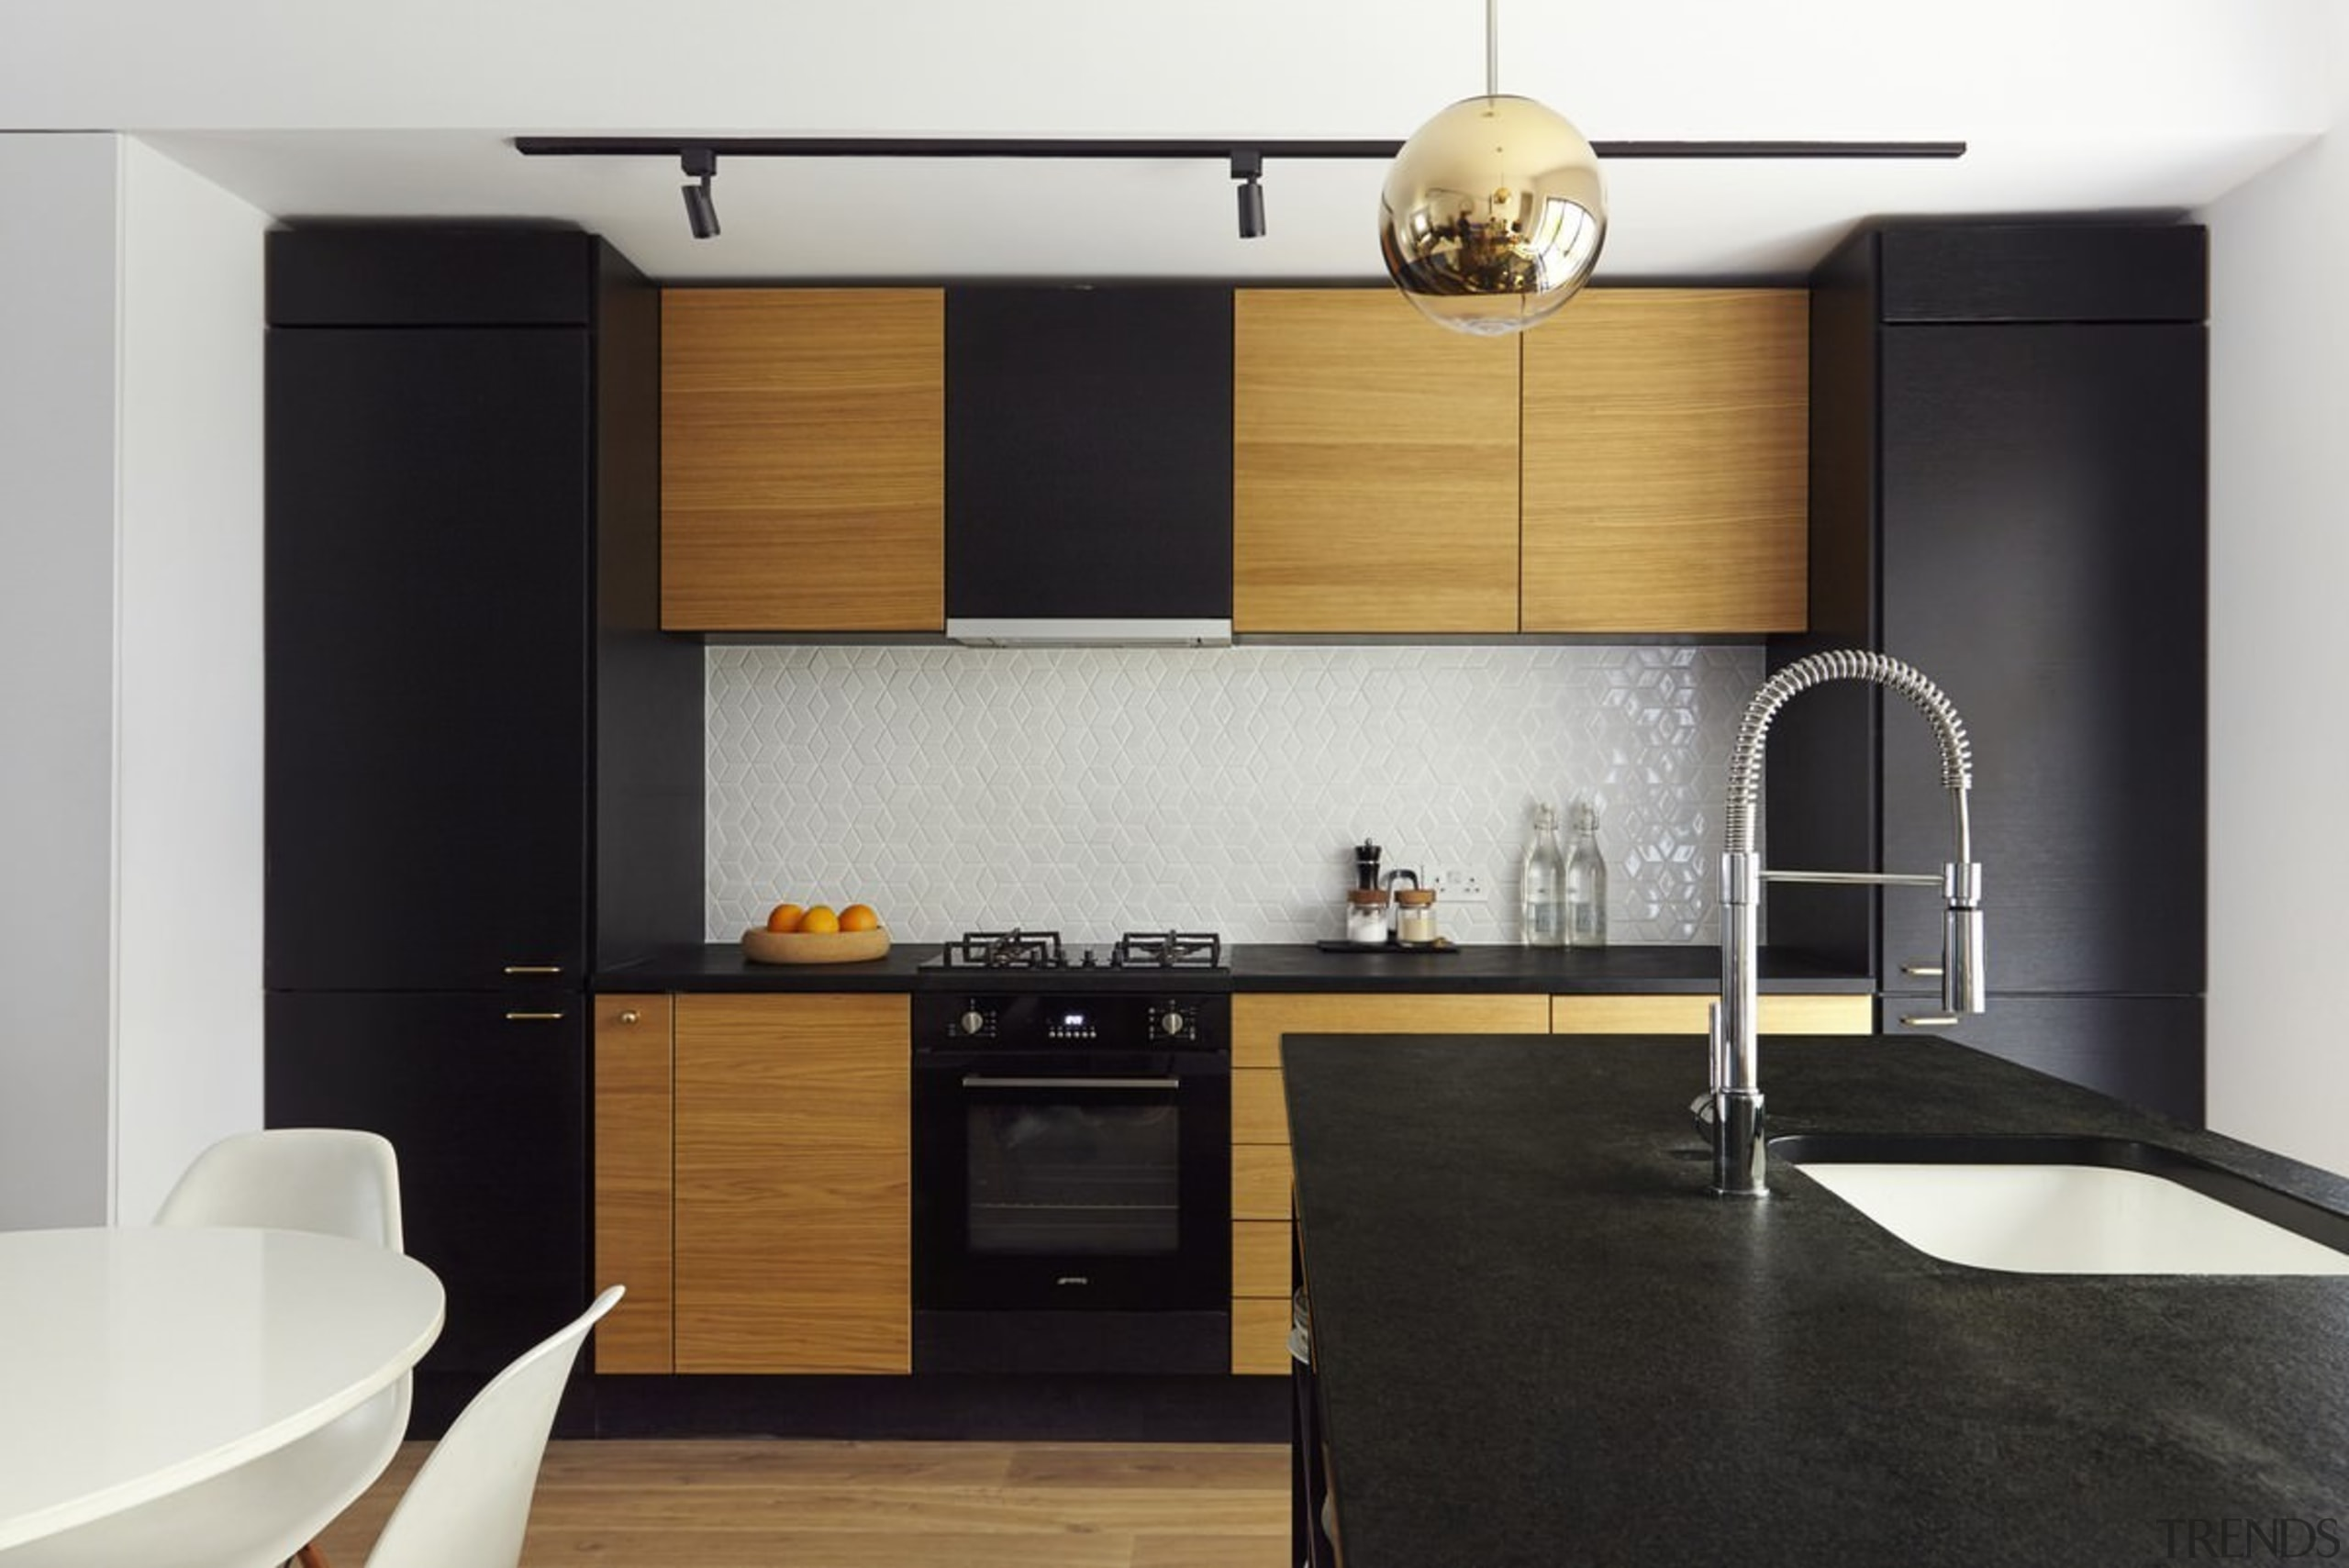 Contrasting elements come together in the kitchen - cabinetry, countertop, cuisine classique, floor, interior design, kitchen, product design, black